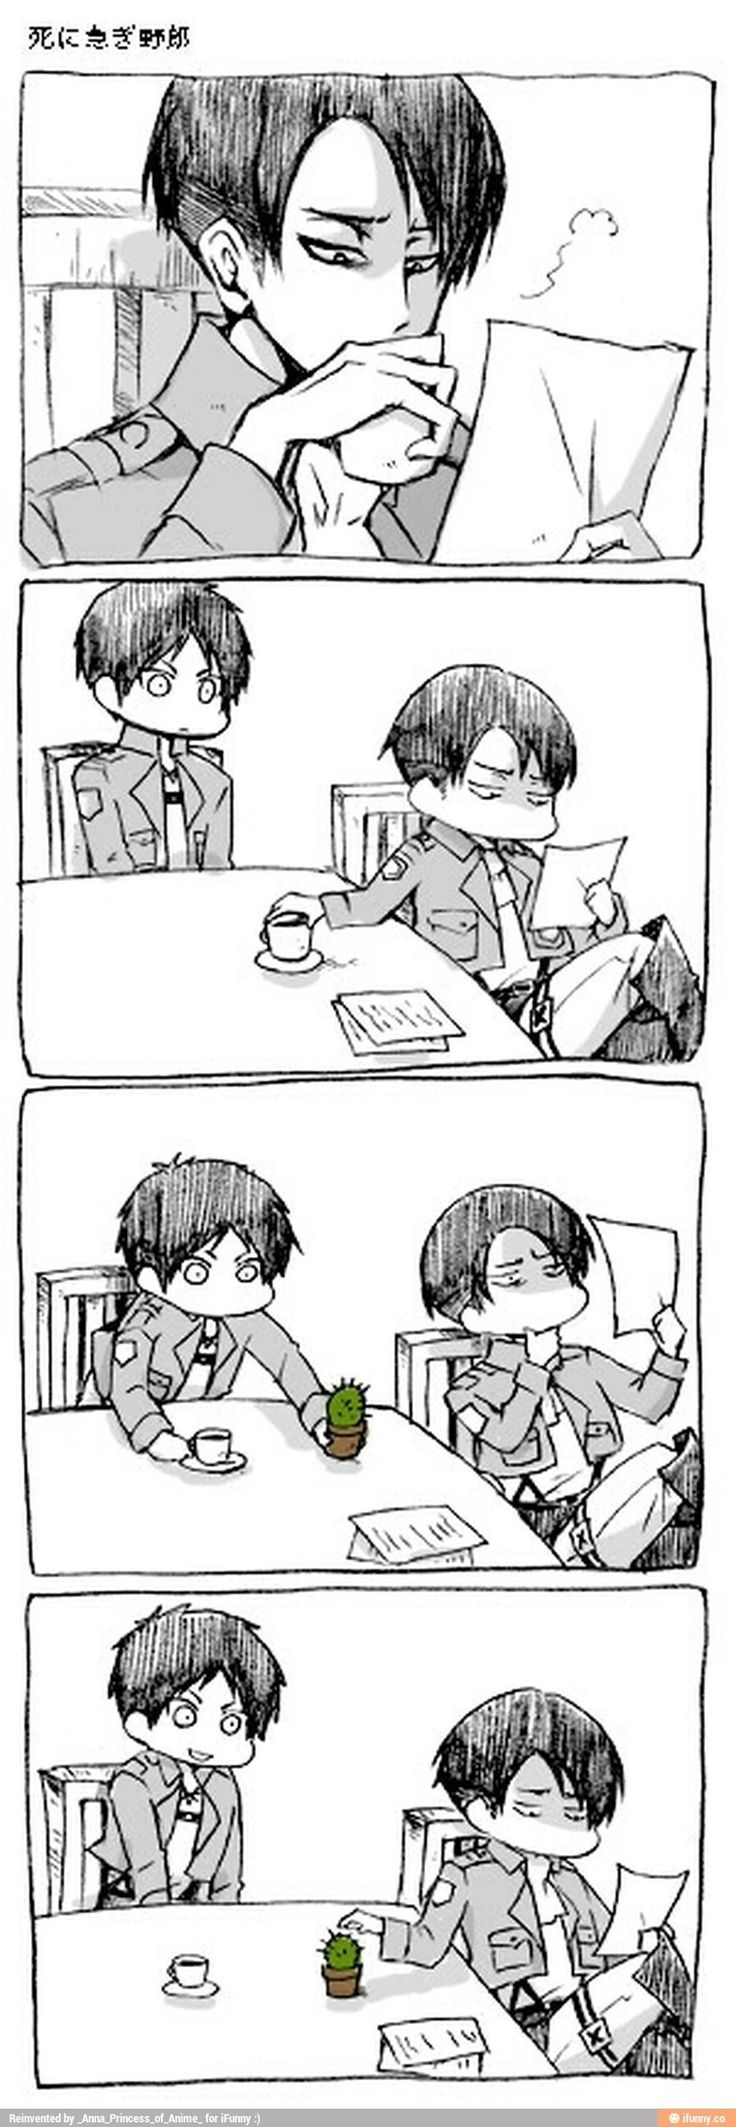 Eren probably ended up with that cactus shoved up his ass.